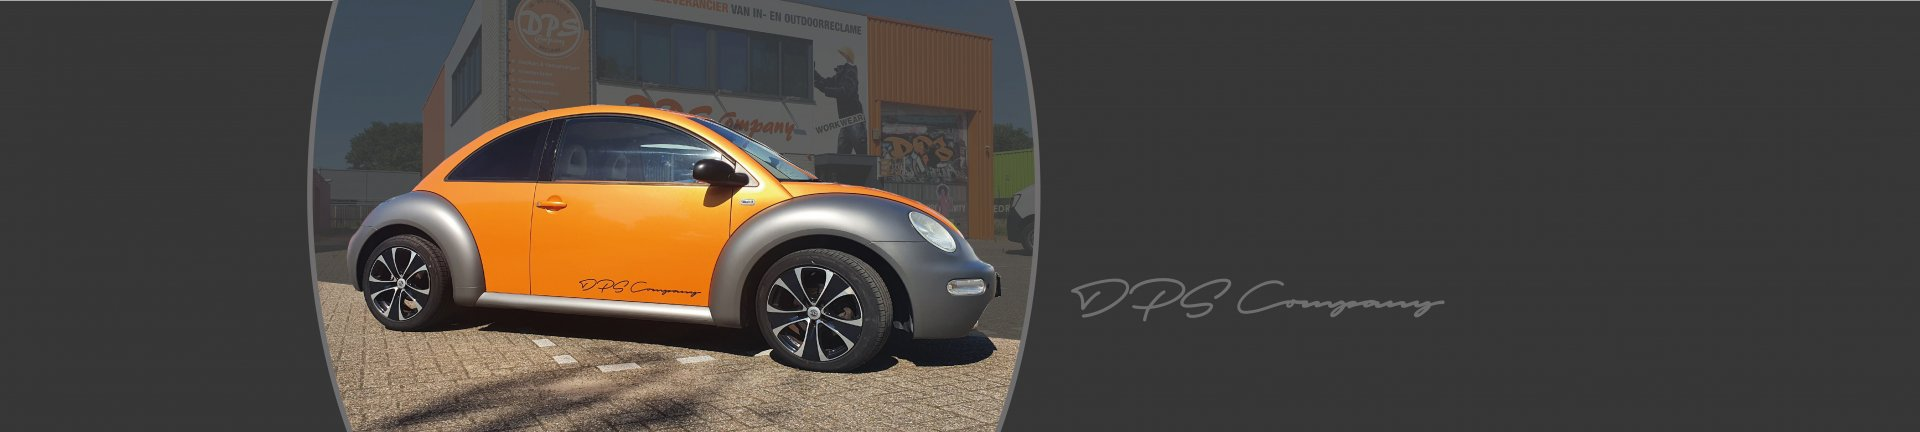 autobelettering, voertuigbelettering, reclame, auto, sticker, wrapping, Roosendaal, belettering